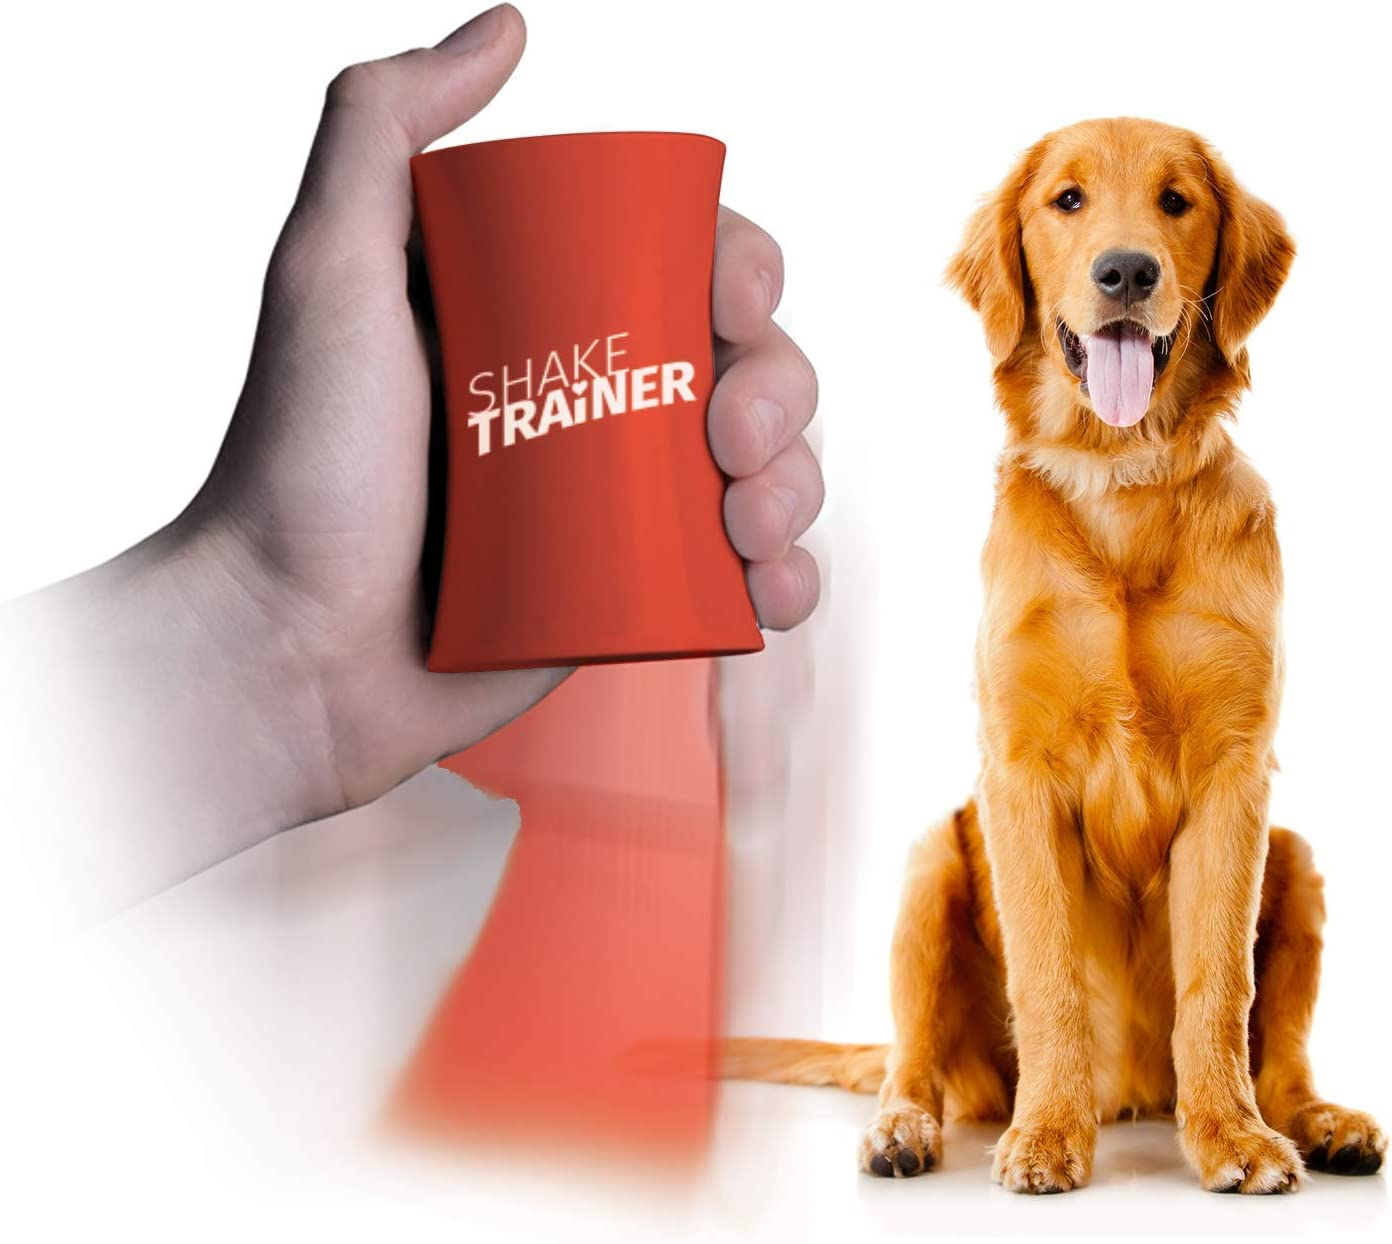 ShakeTrainer - The Original Premium & Complete Humane Dog Training Kit with Instructional Video - Stops Your Dog's Bad Behaviors in Minutes Without Shocking or Spraying - Easy to Use